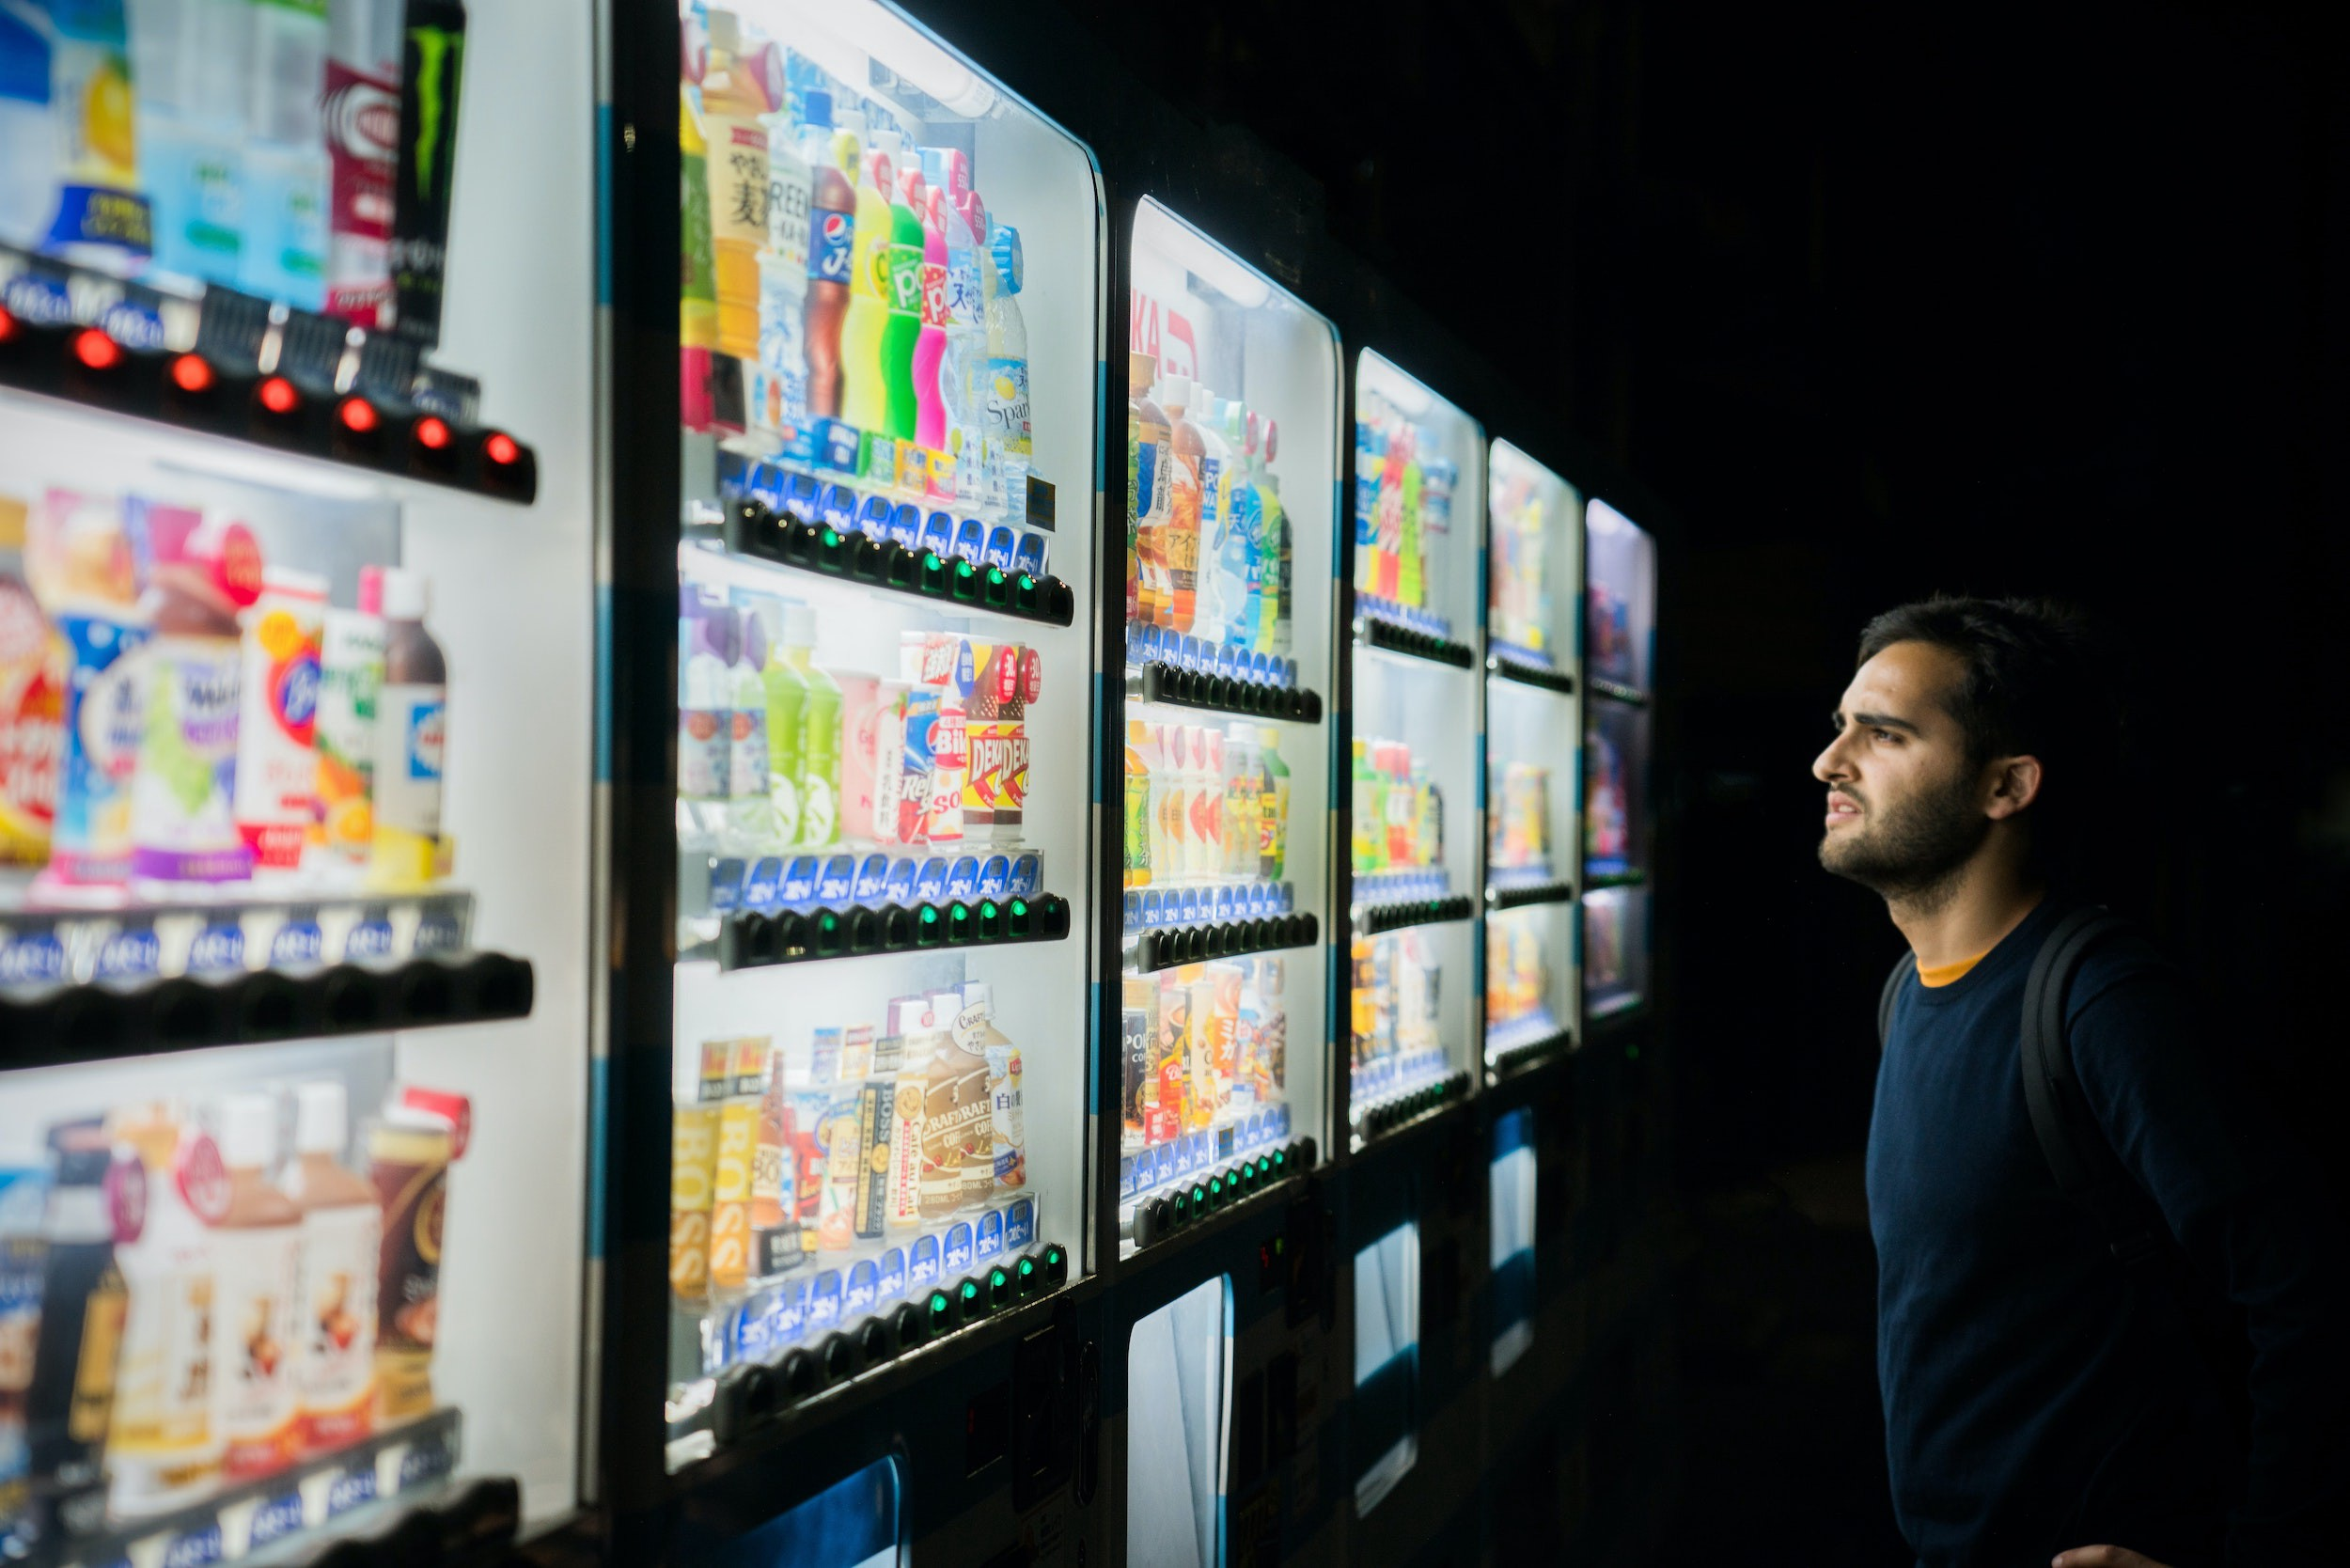 Man stares at choices in multiple vending machines.